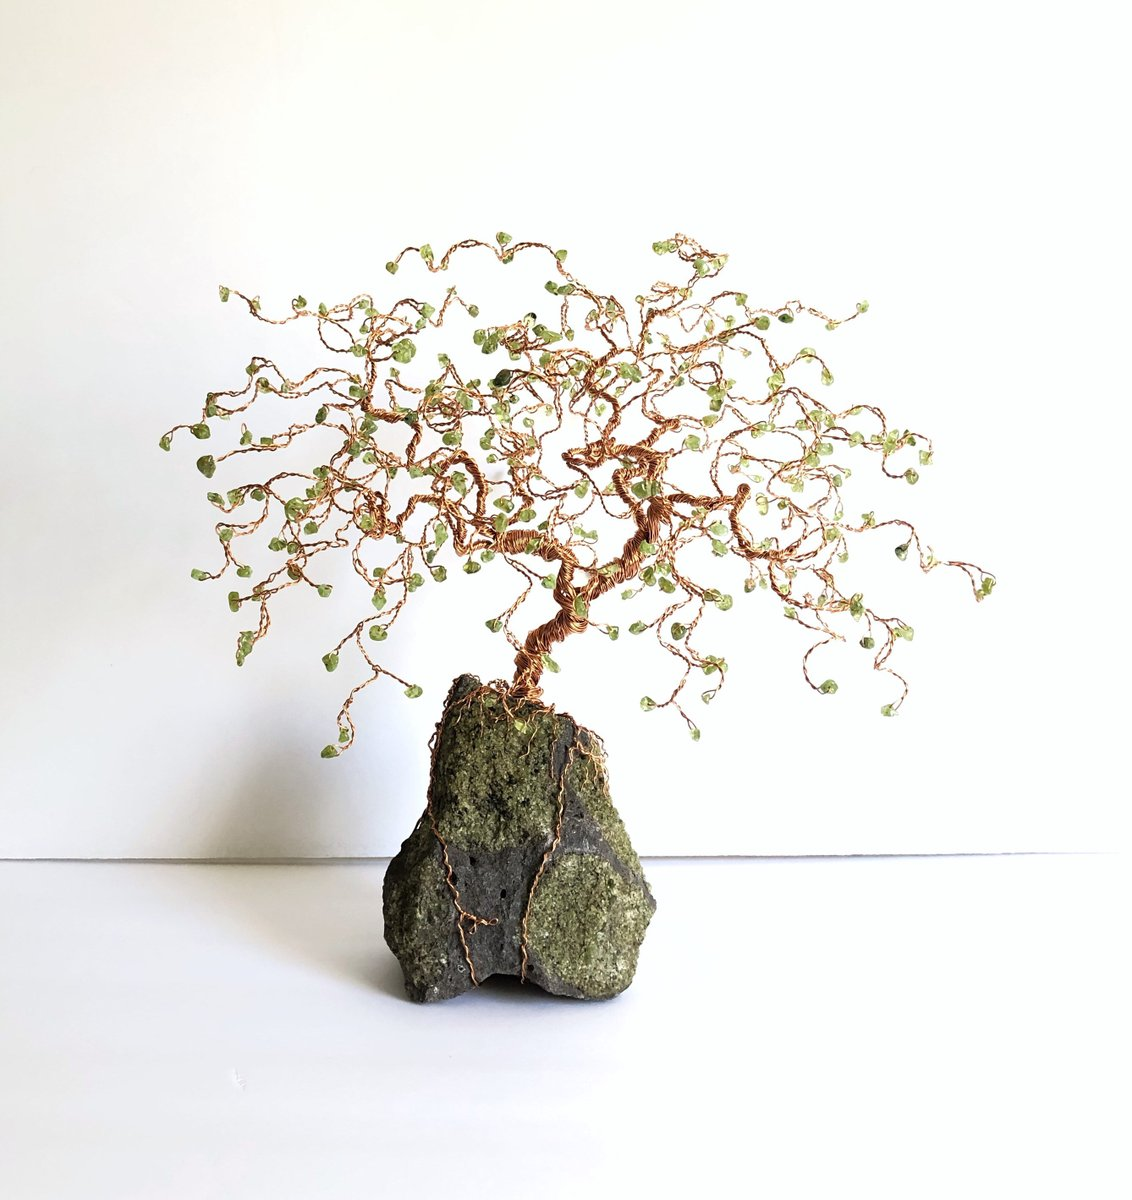 Etsy is now offering installment plans on purchases of $50+! See Etsy for more details! https://t.co/ioA1SPG044 #peridot #greentree #treeart #etsyfinds https://t.co/iXGSEgs0W5